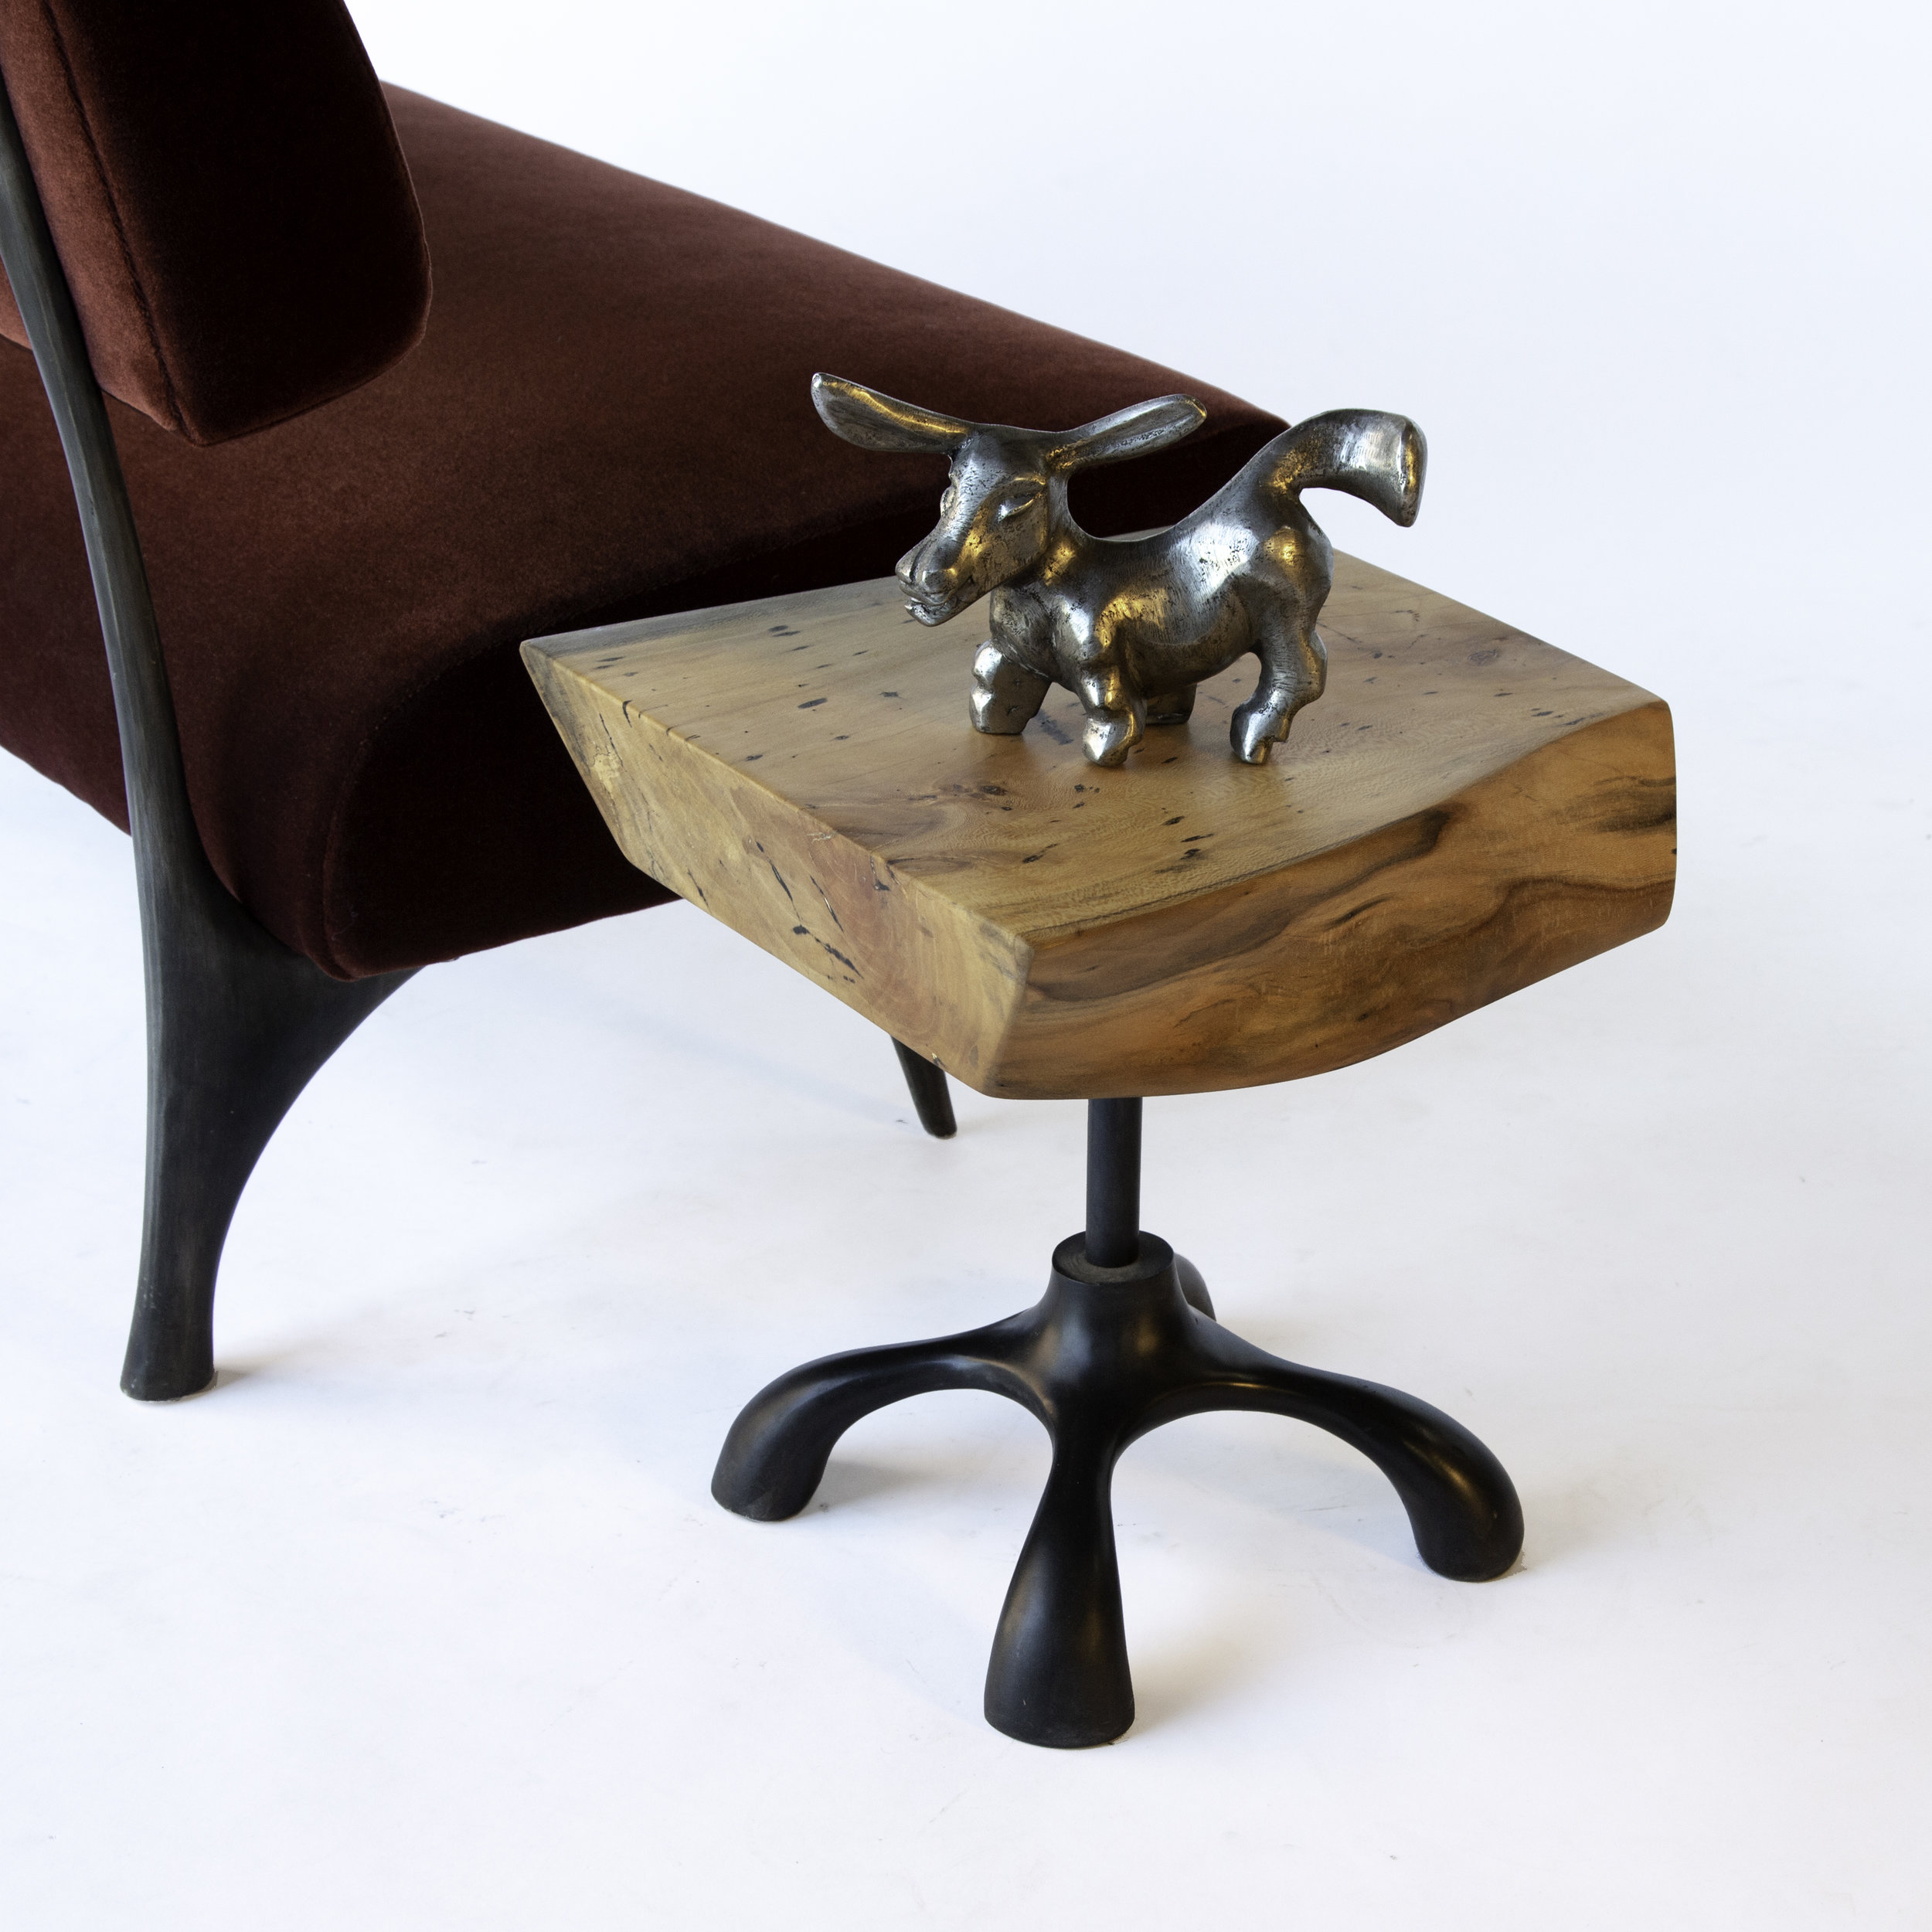 Chunk Table with Donkey and Twig Chair.jpg